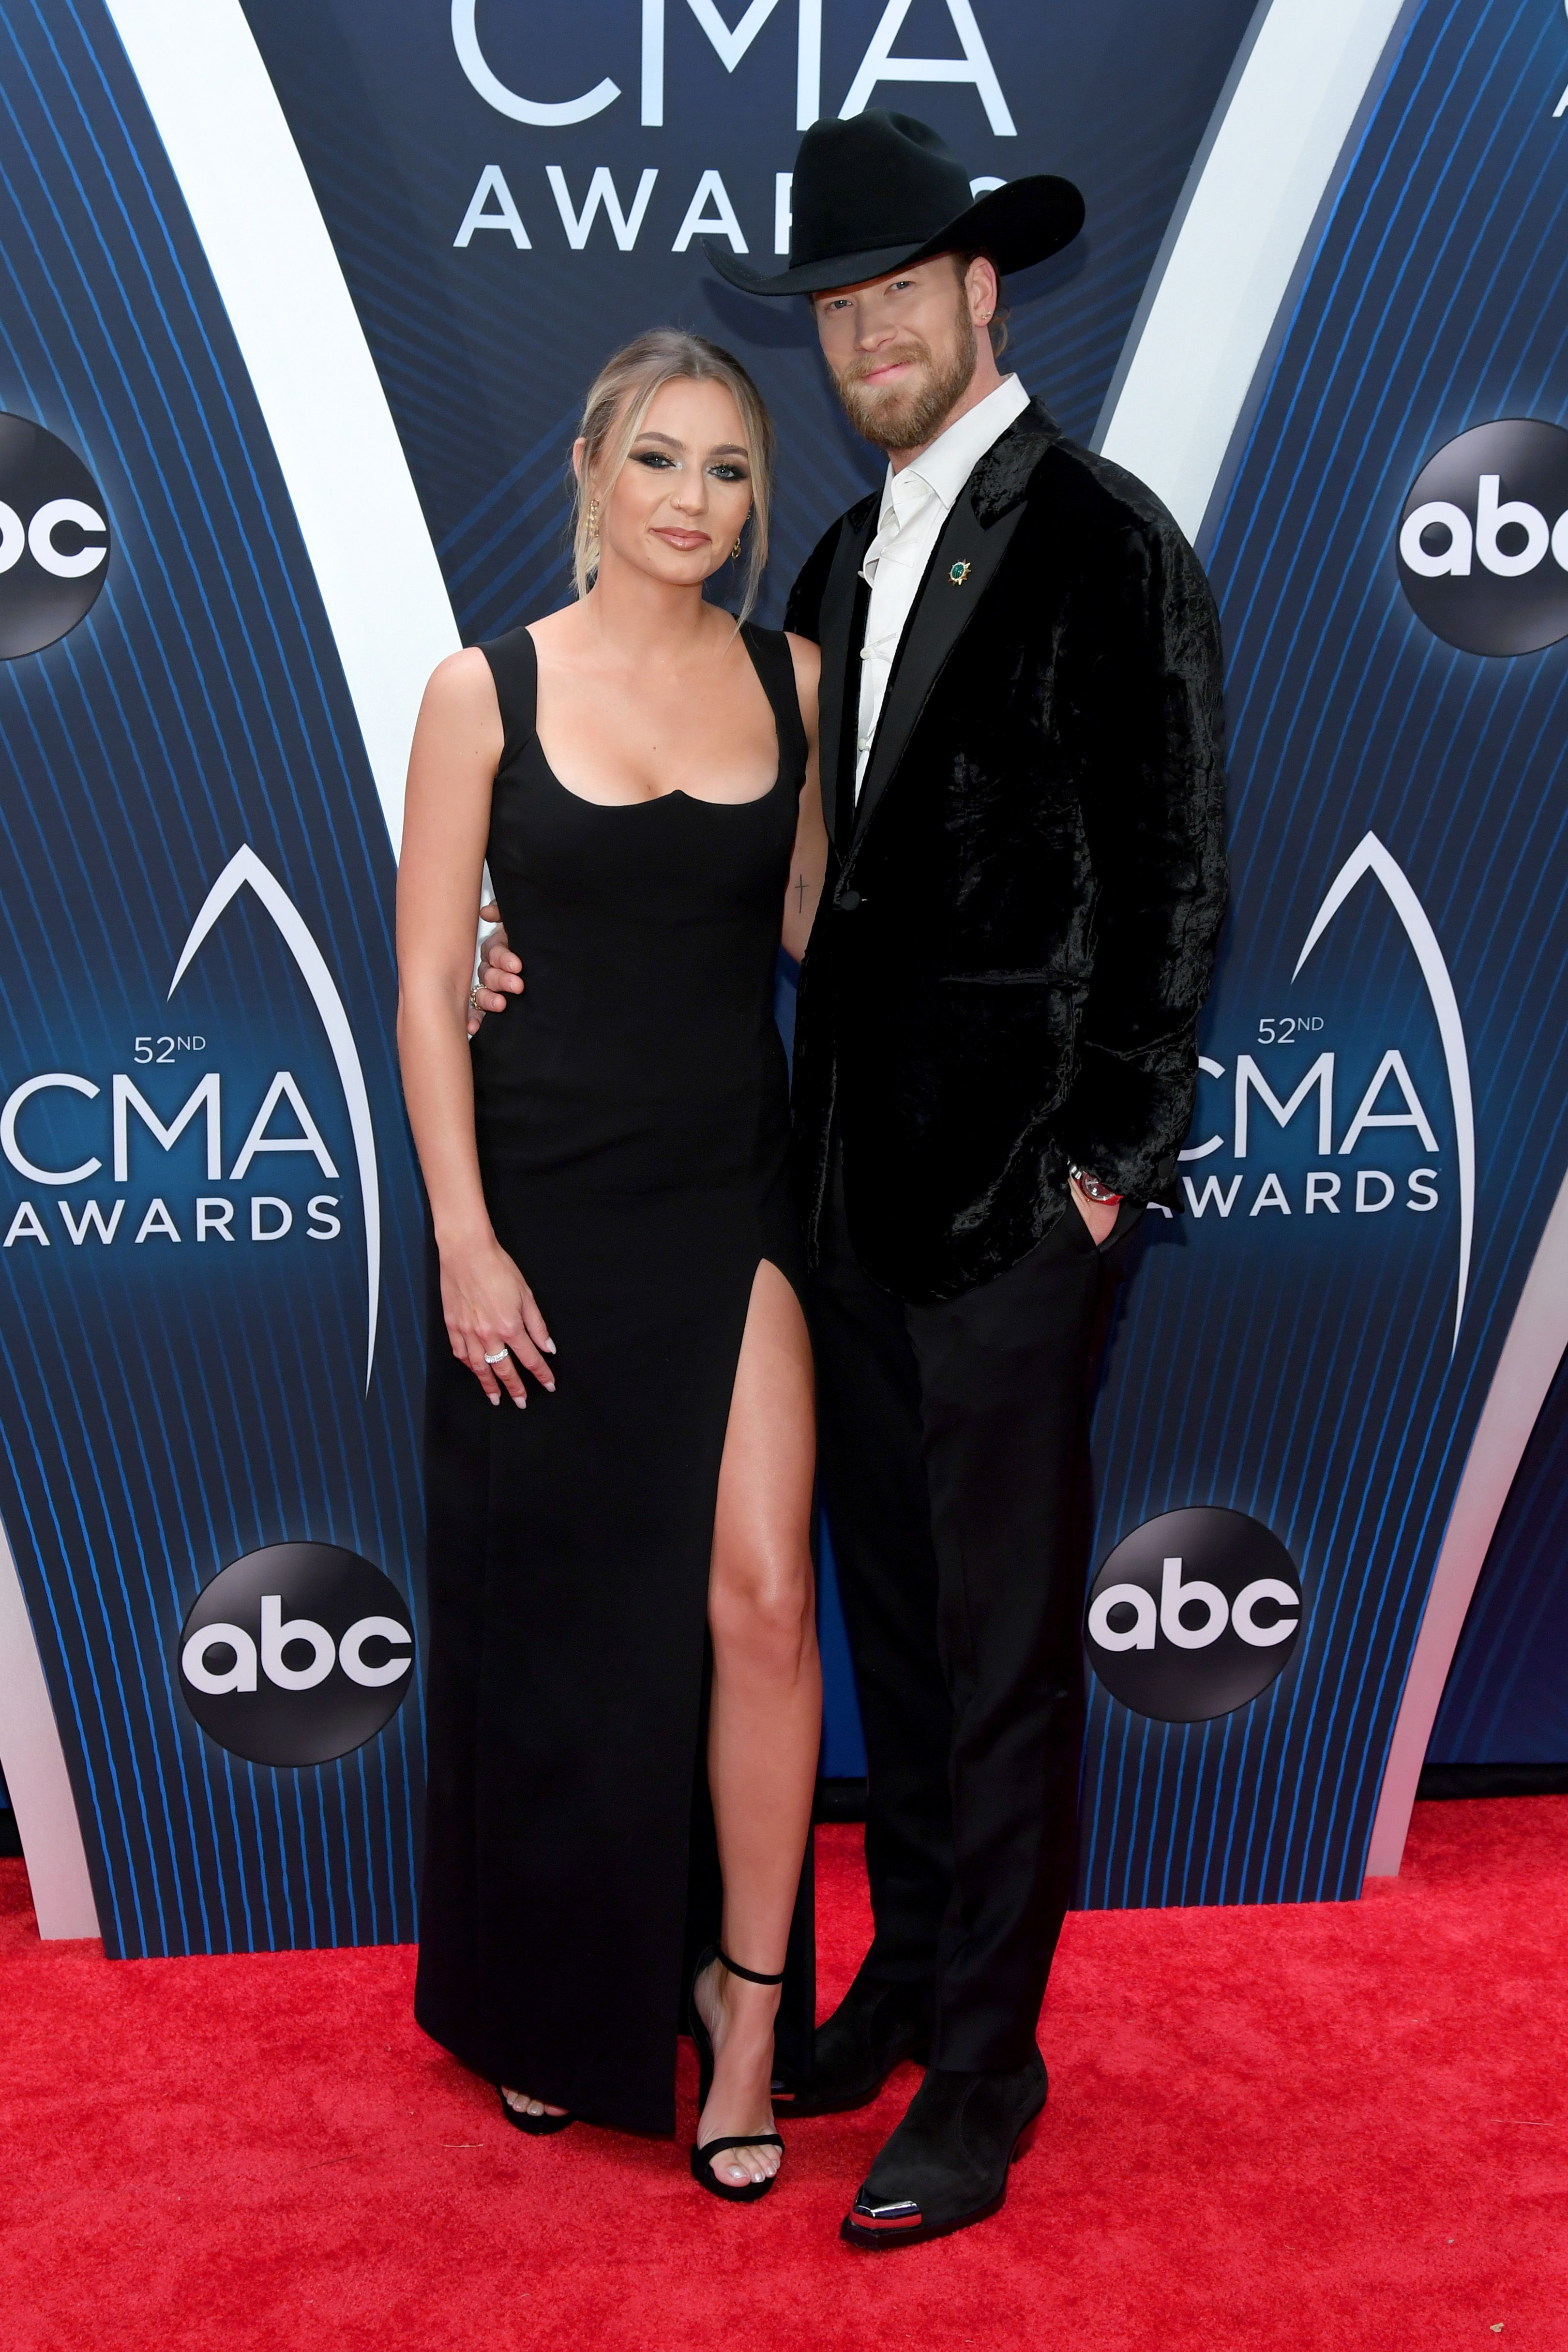 On Cutest Couples The Red 2018 Cma Carpet All Awards L5c3Rj4Aq